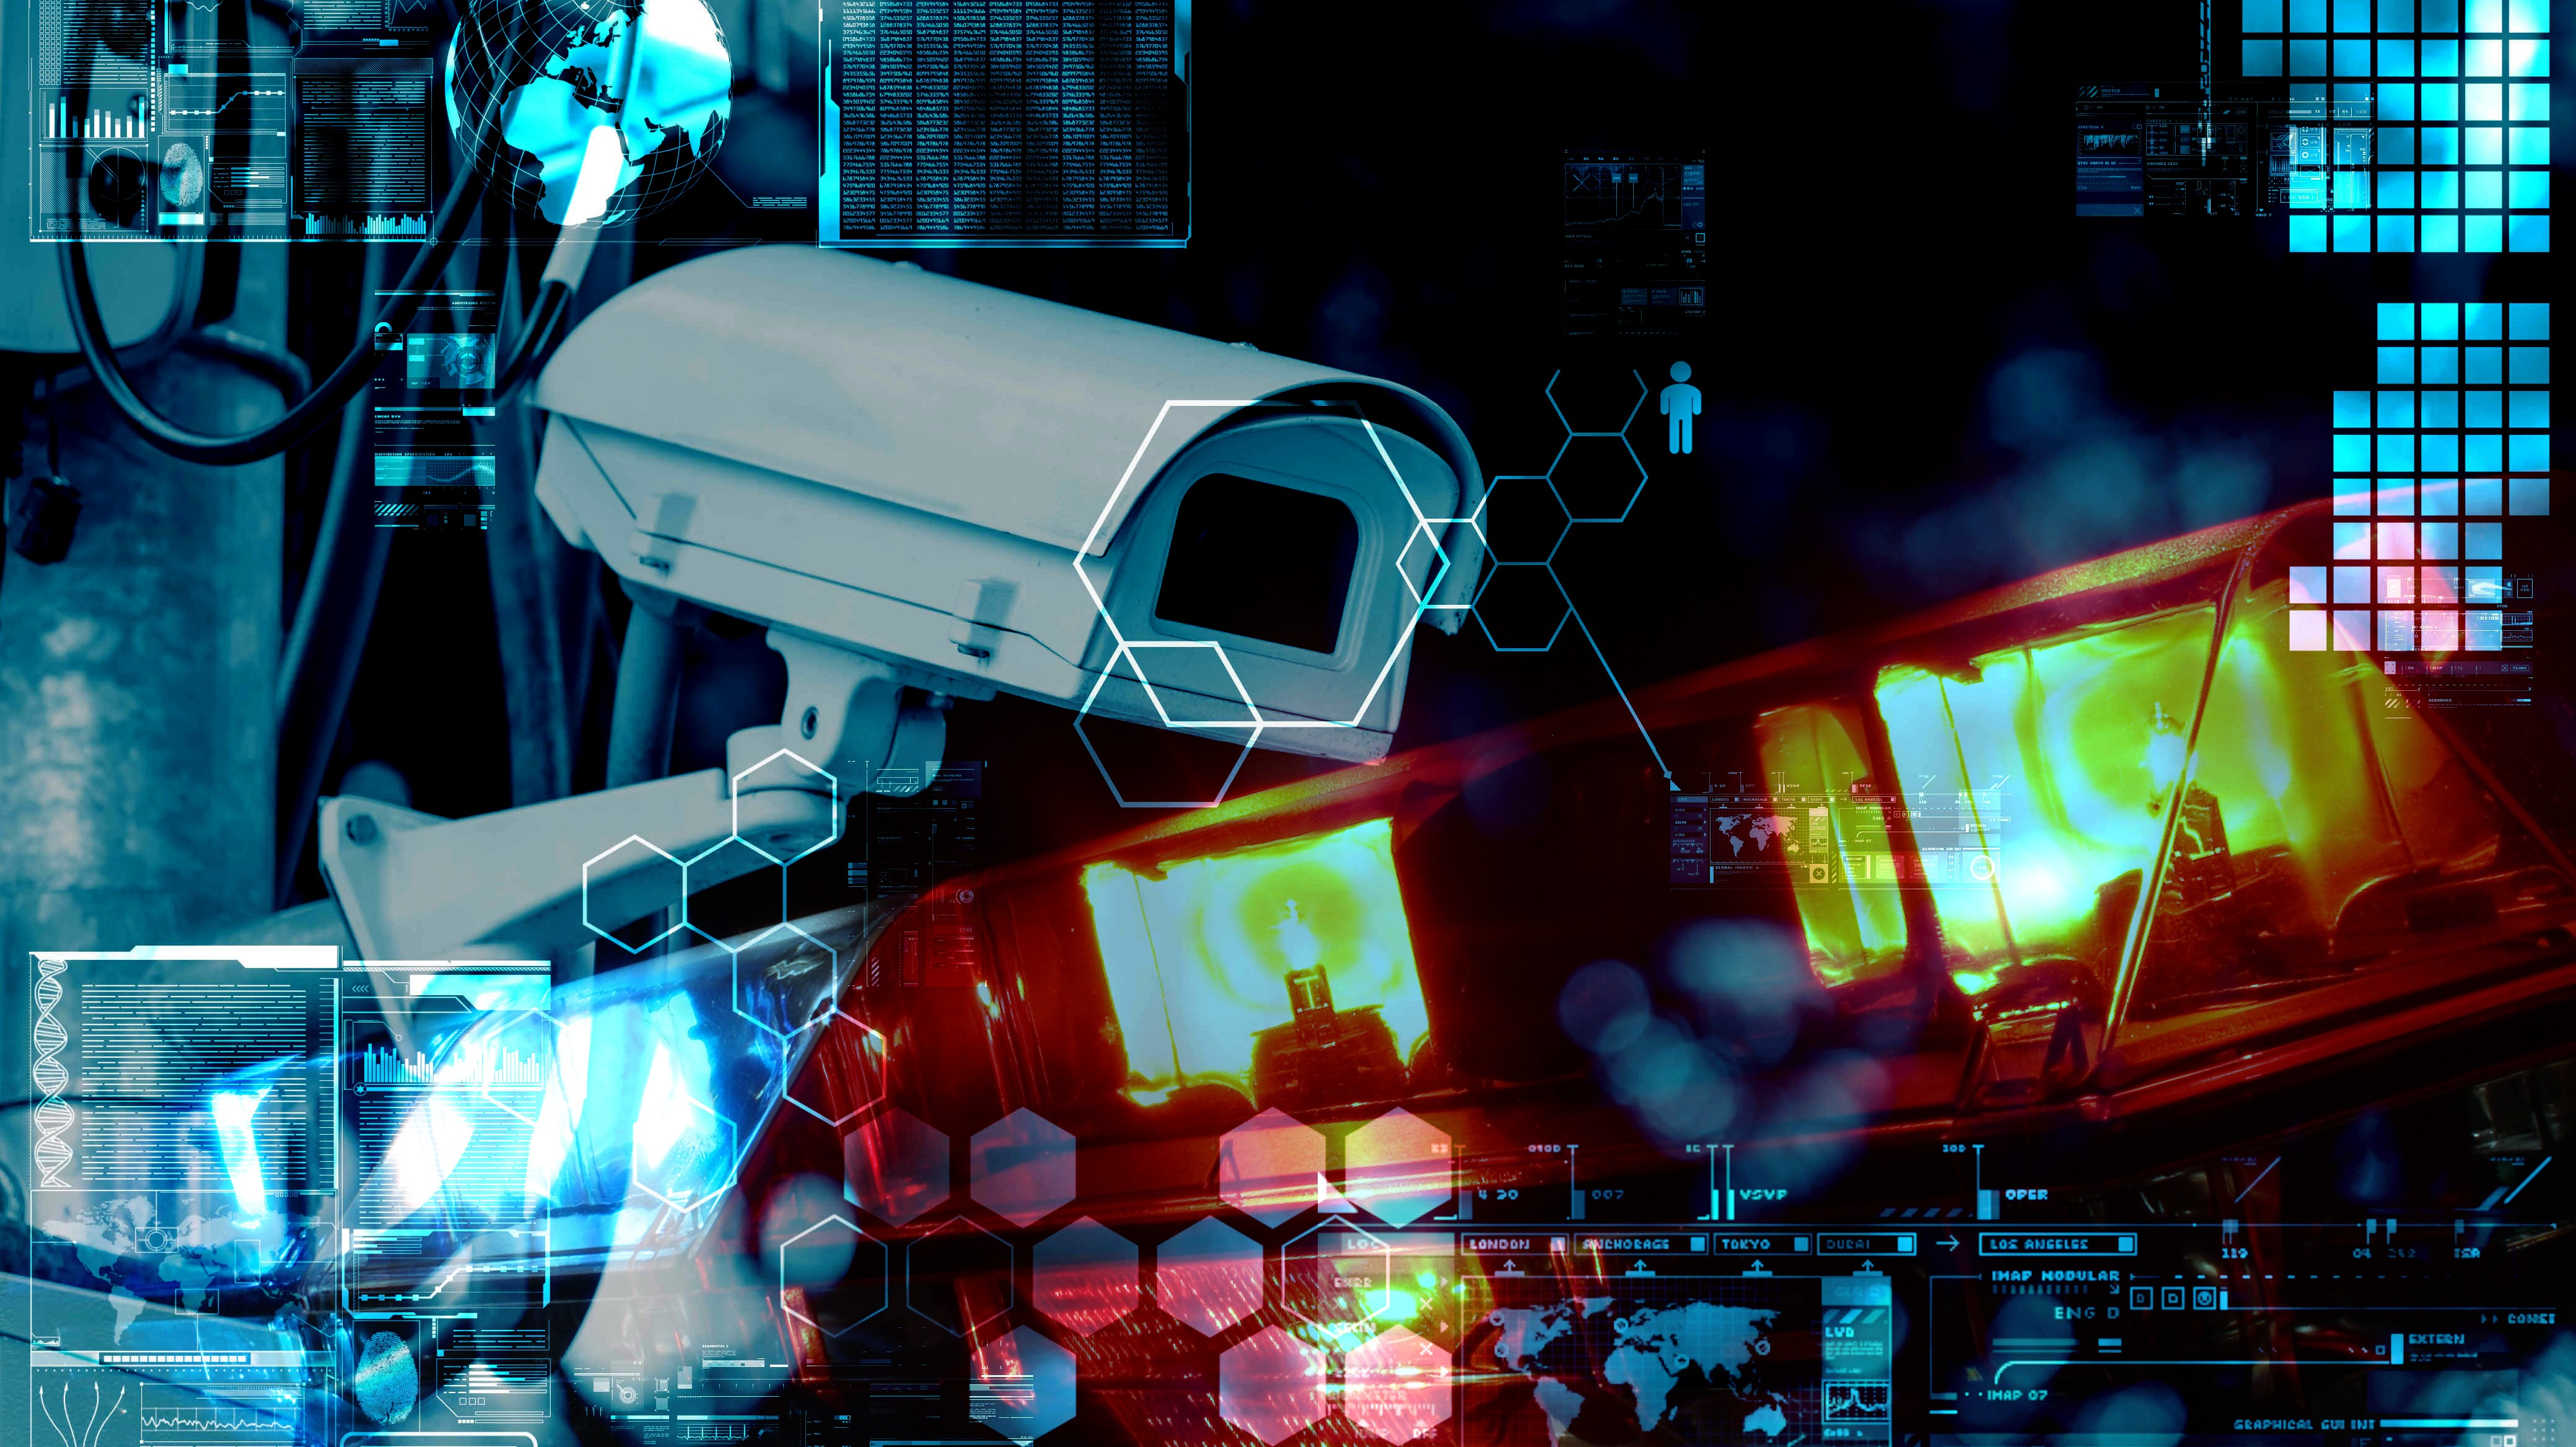 Dozens of Cities Have Secretly Experimented With Predictive Policing Software